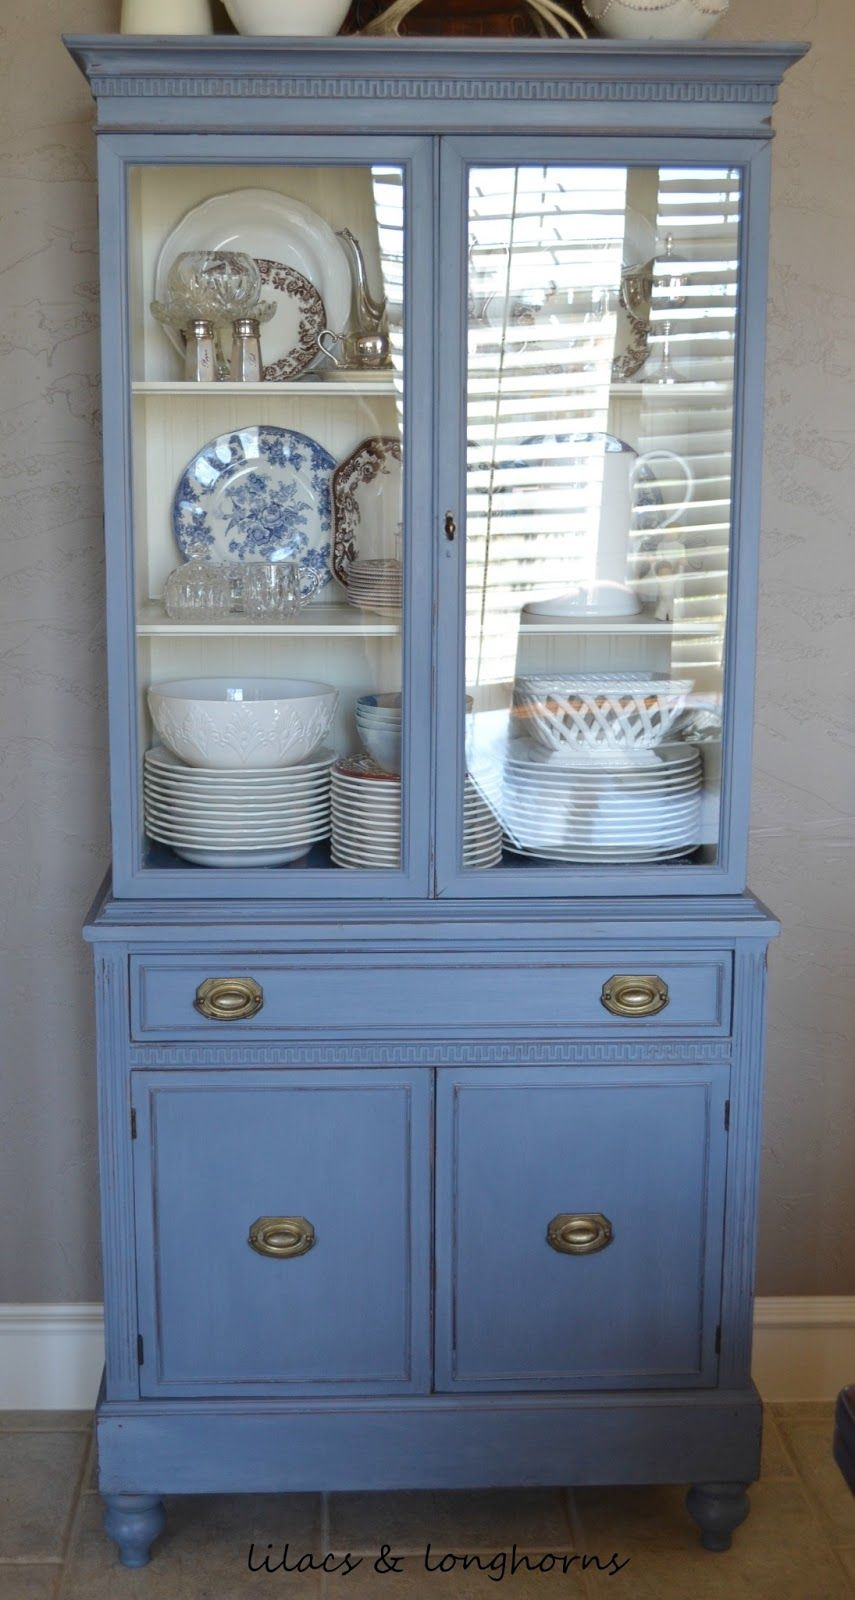 hutch+with+legs.jpg (855×1600) | things for kitchen | Pinterest ...